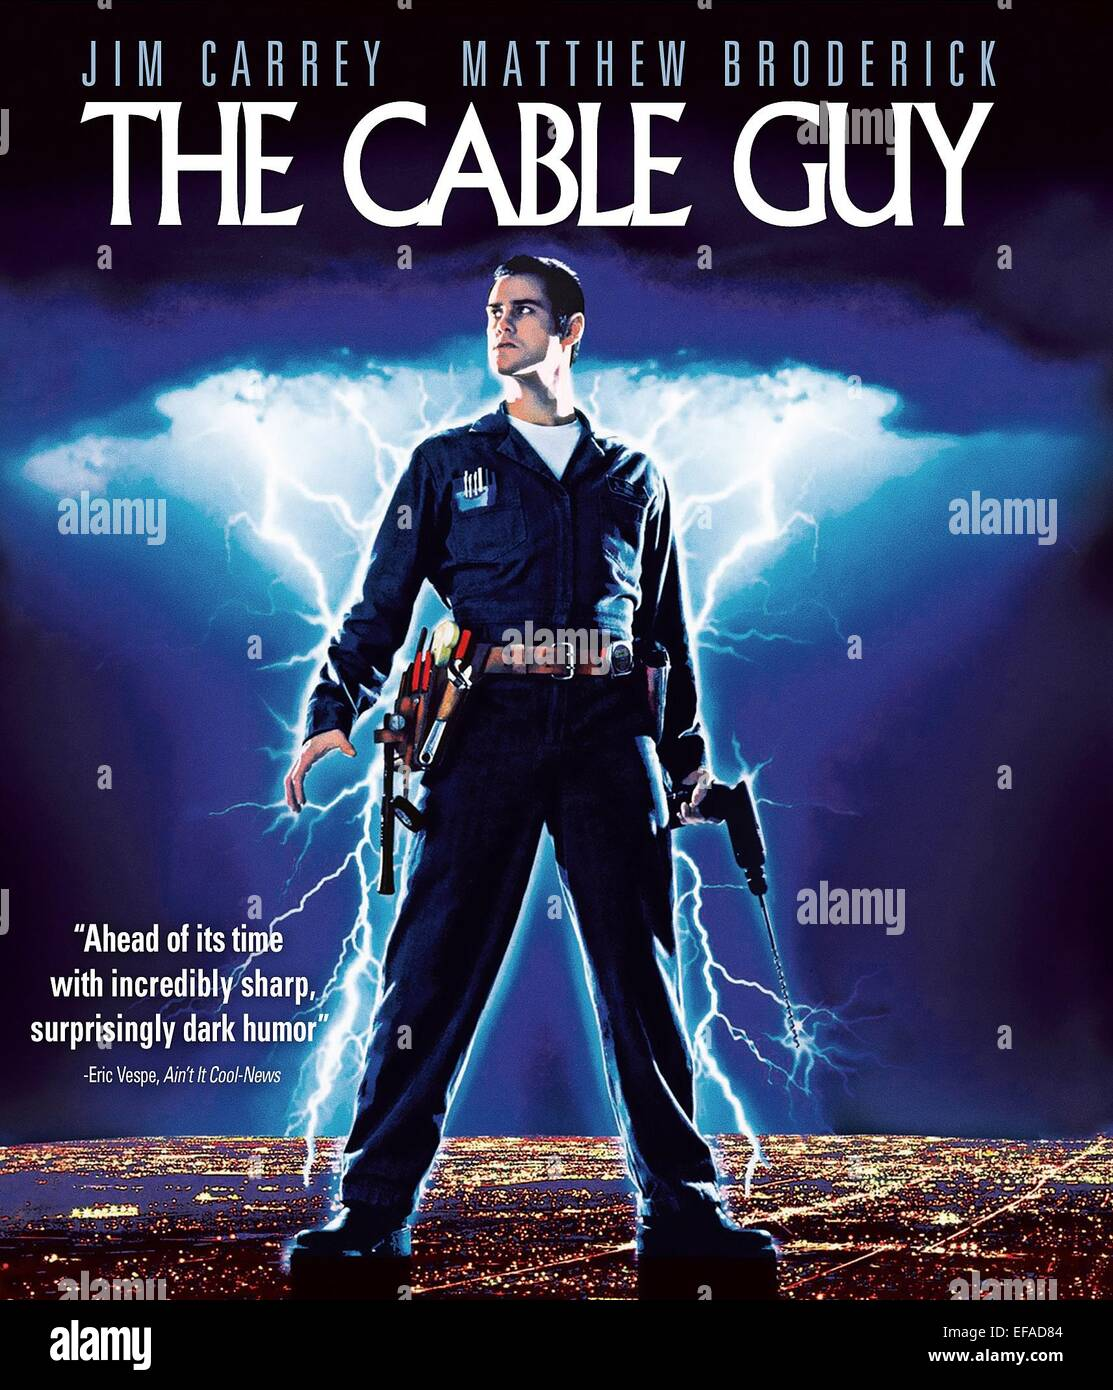 JIM CARREY THE CABLE GUY (1996 Stock Photo - Alamy